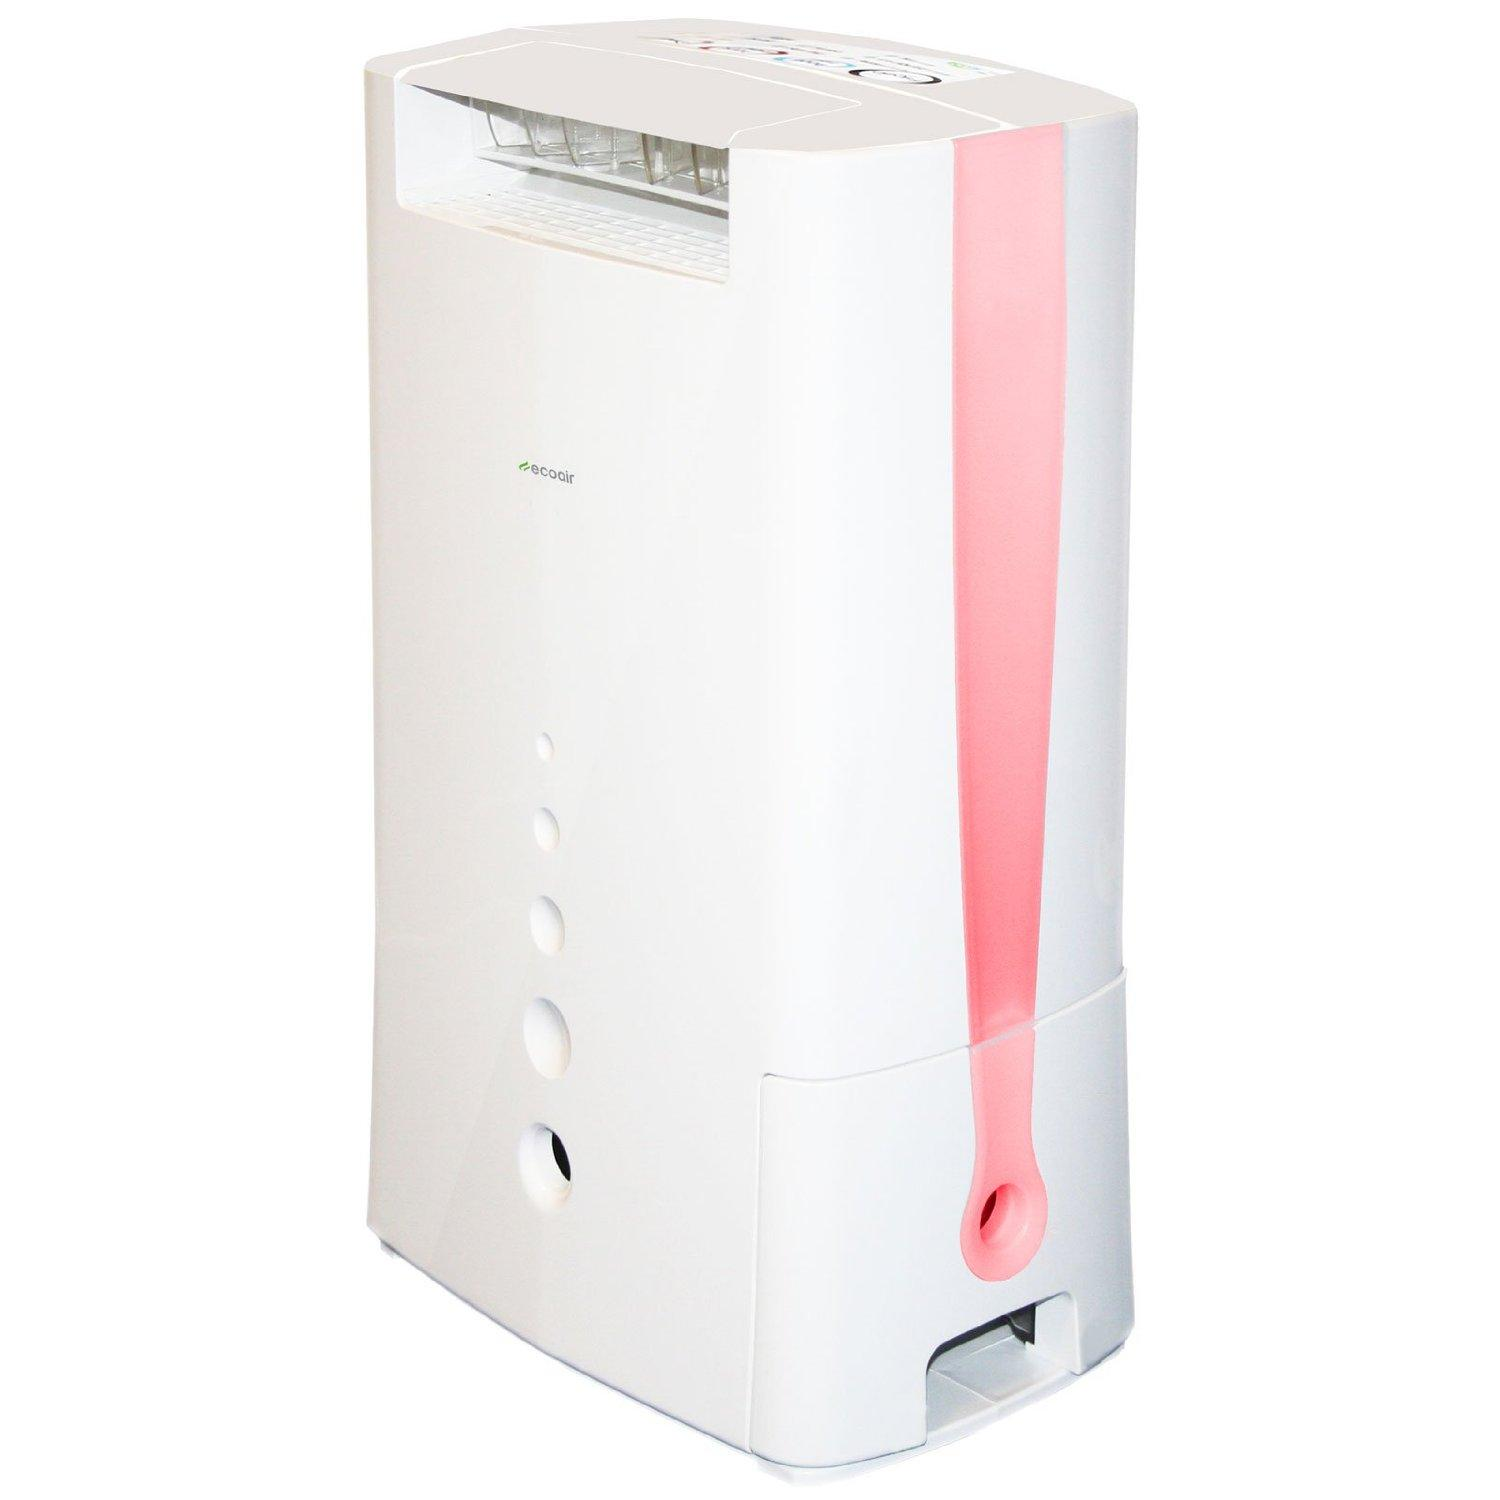 Dehumidifier with Ioniser and Silver Filter 8 L Red: Amazon.co.uk #C5061A